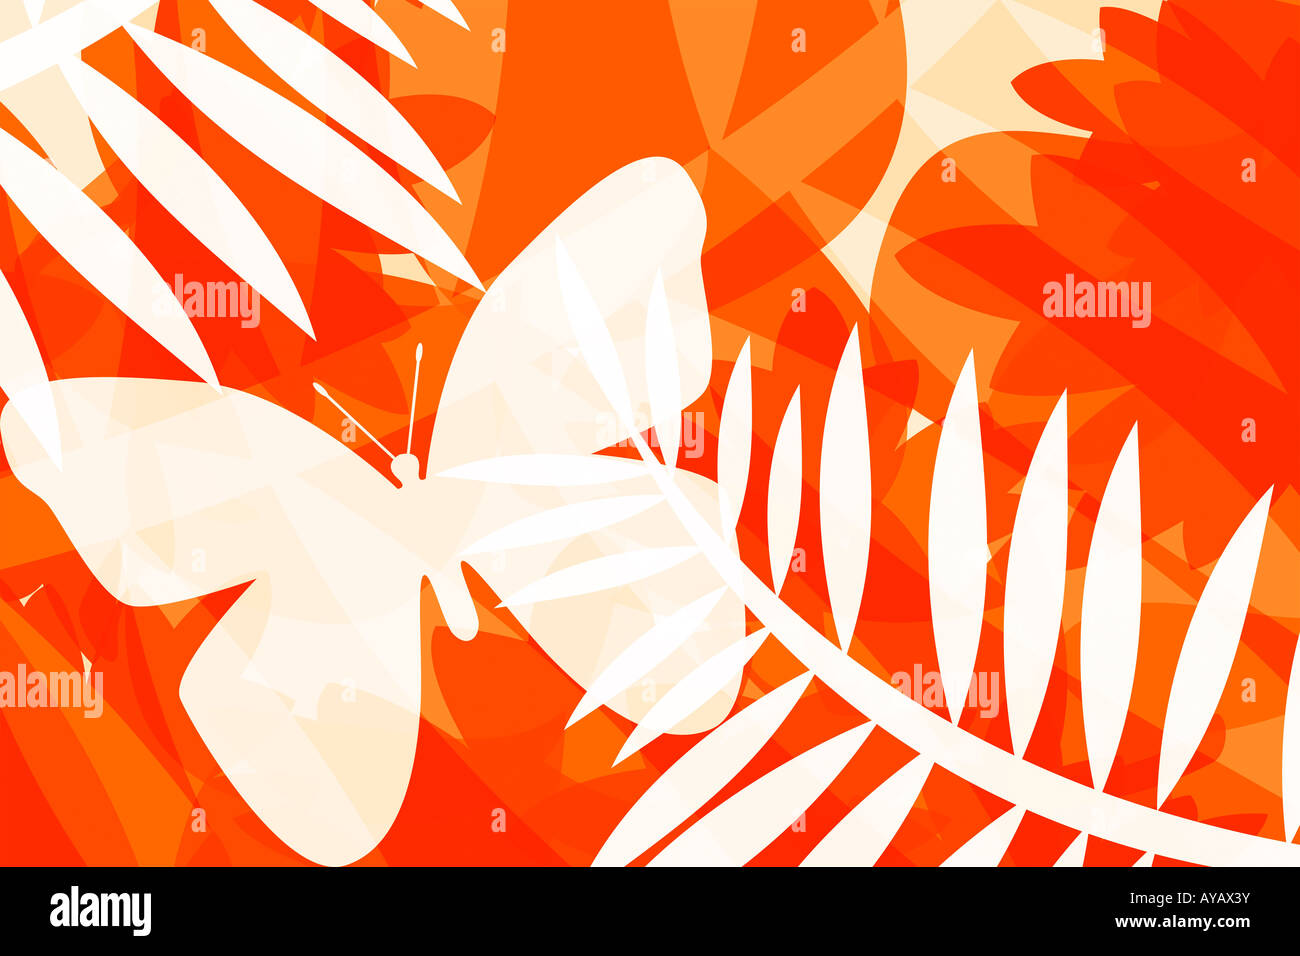 Illustration of butterflies and leaves - Stock Image